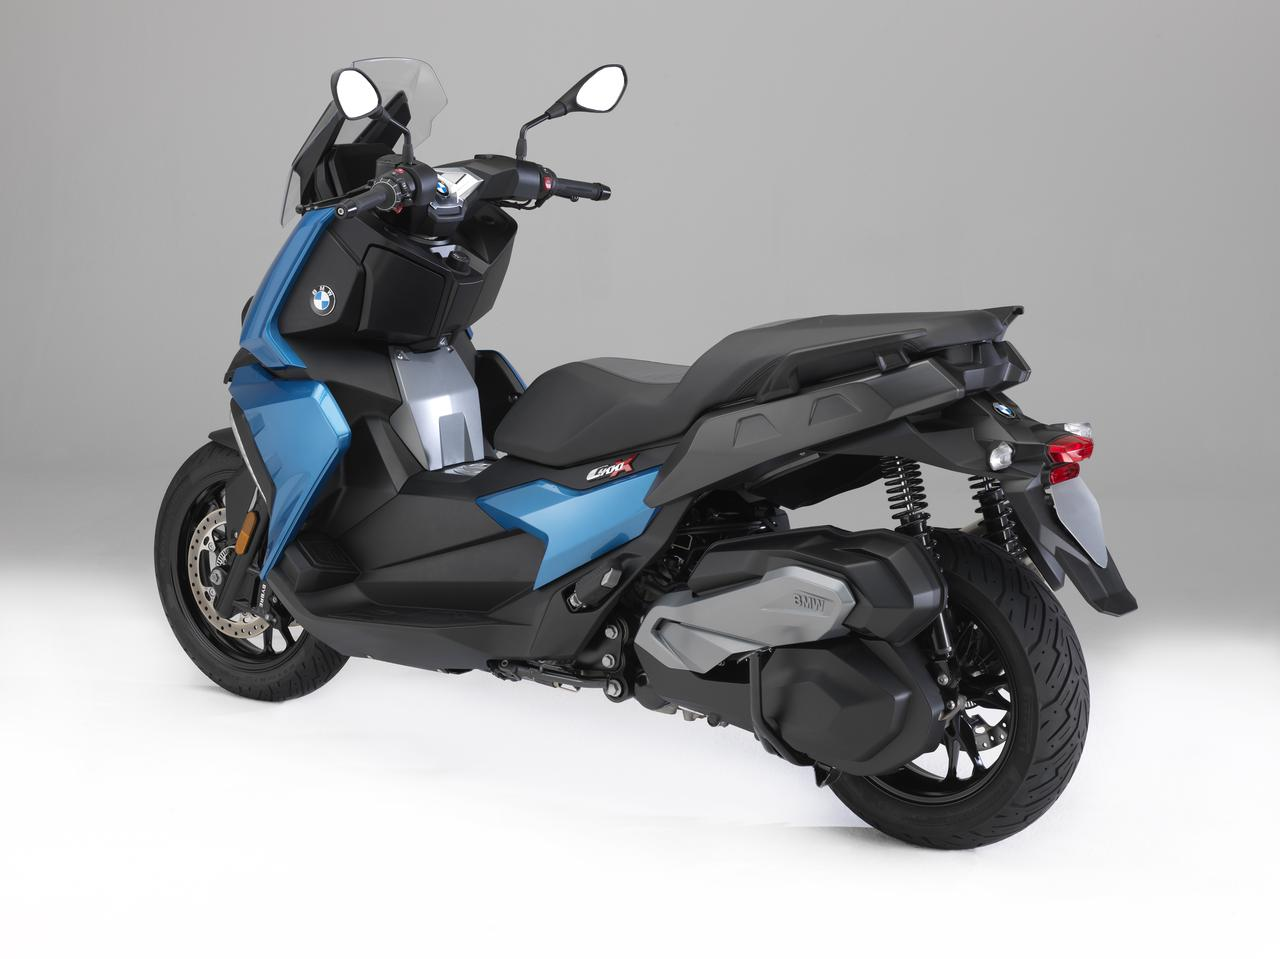 Images : 8番目の画像 - BMW C 400 X - LAWRENCE - Motorcycle x Cars + α = Your Life.